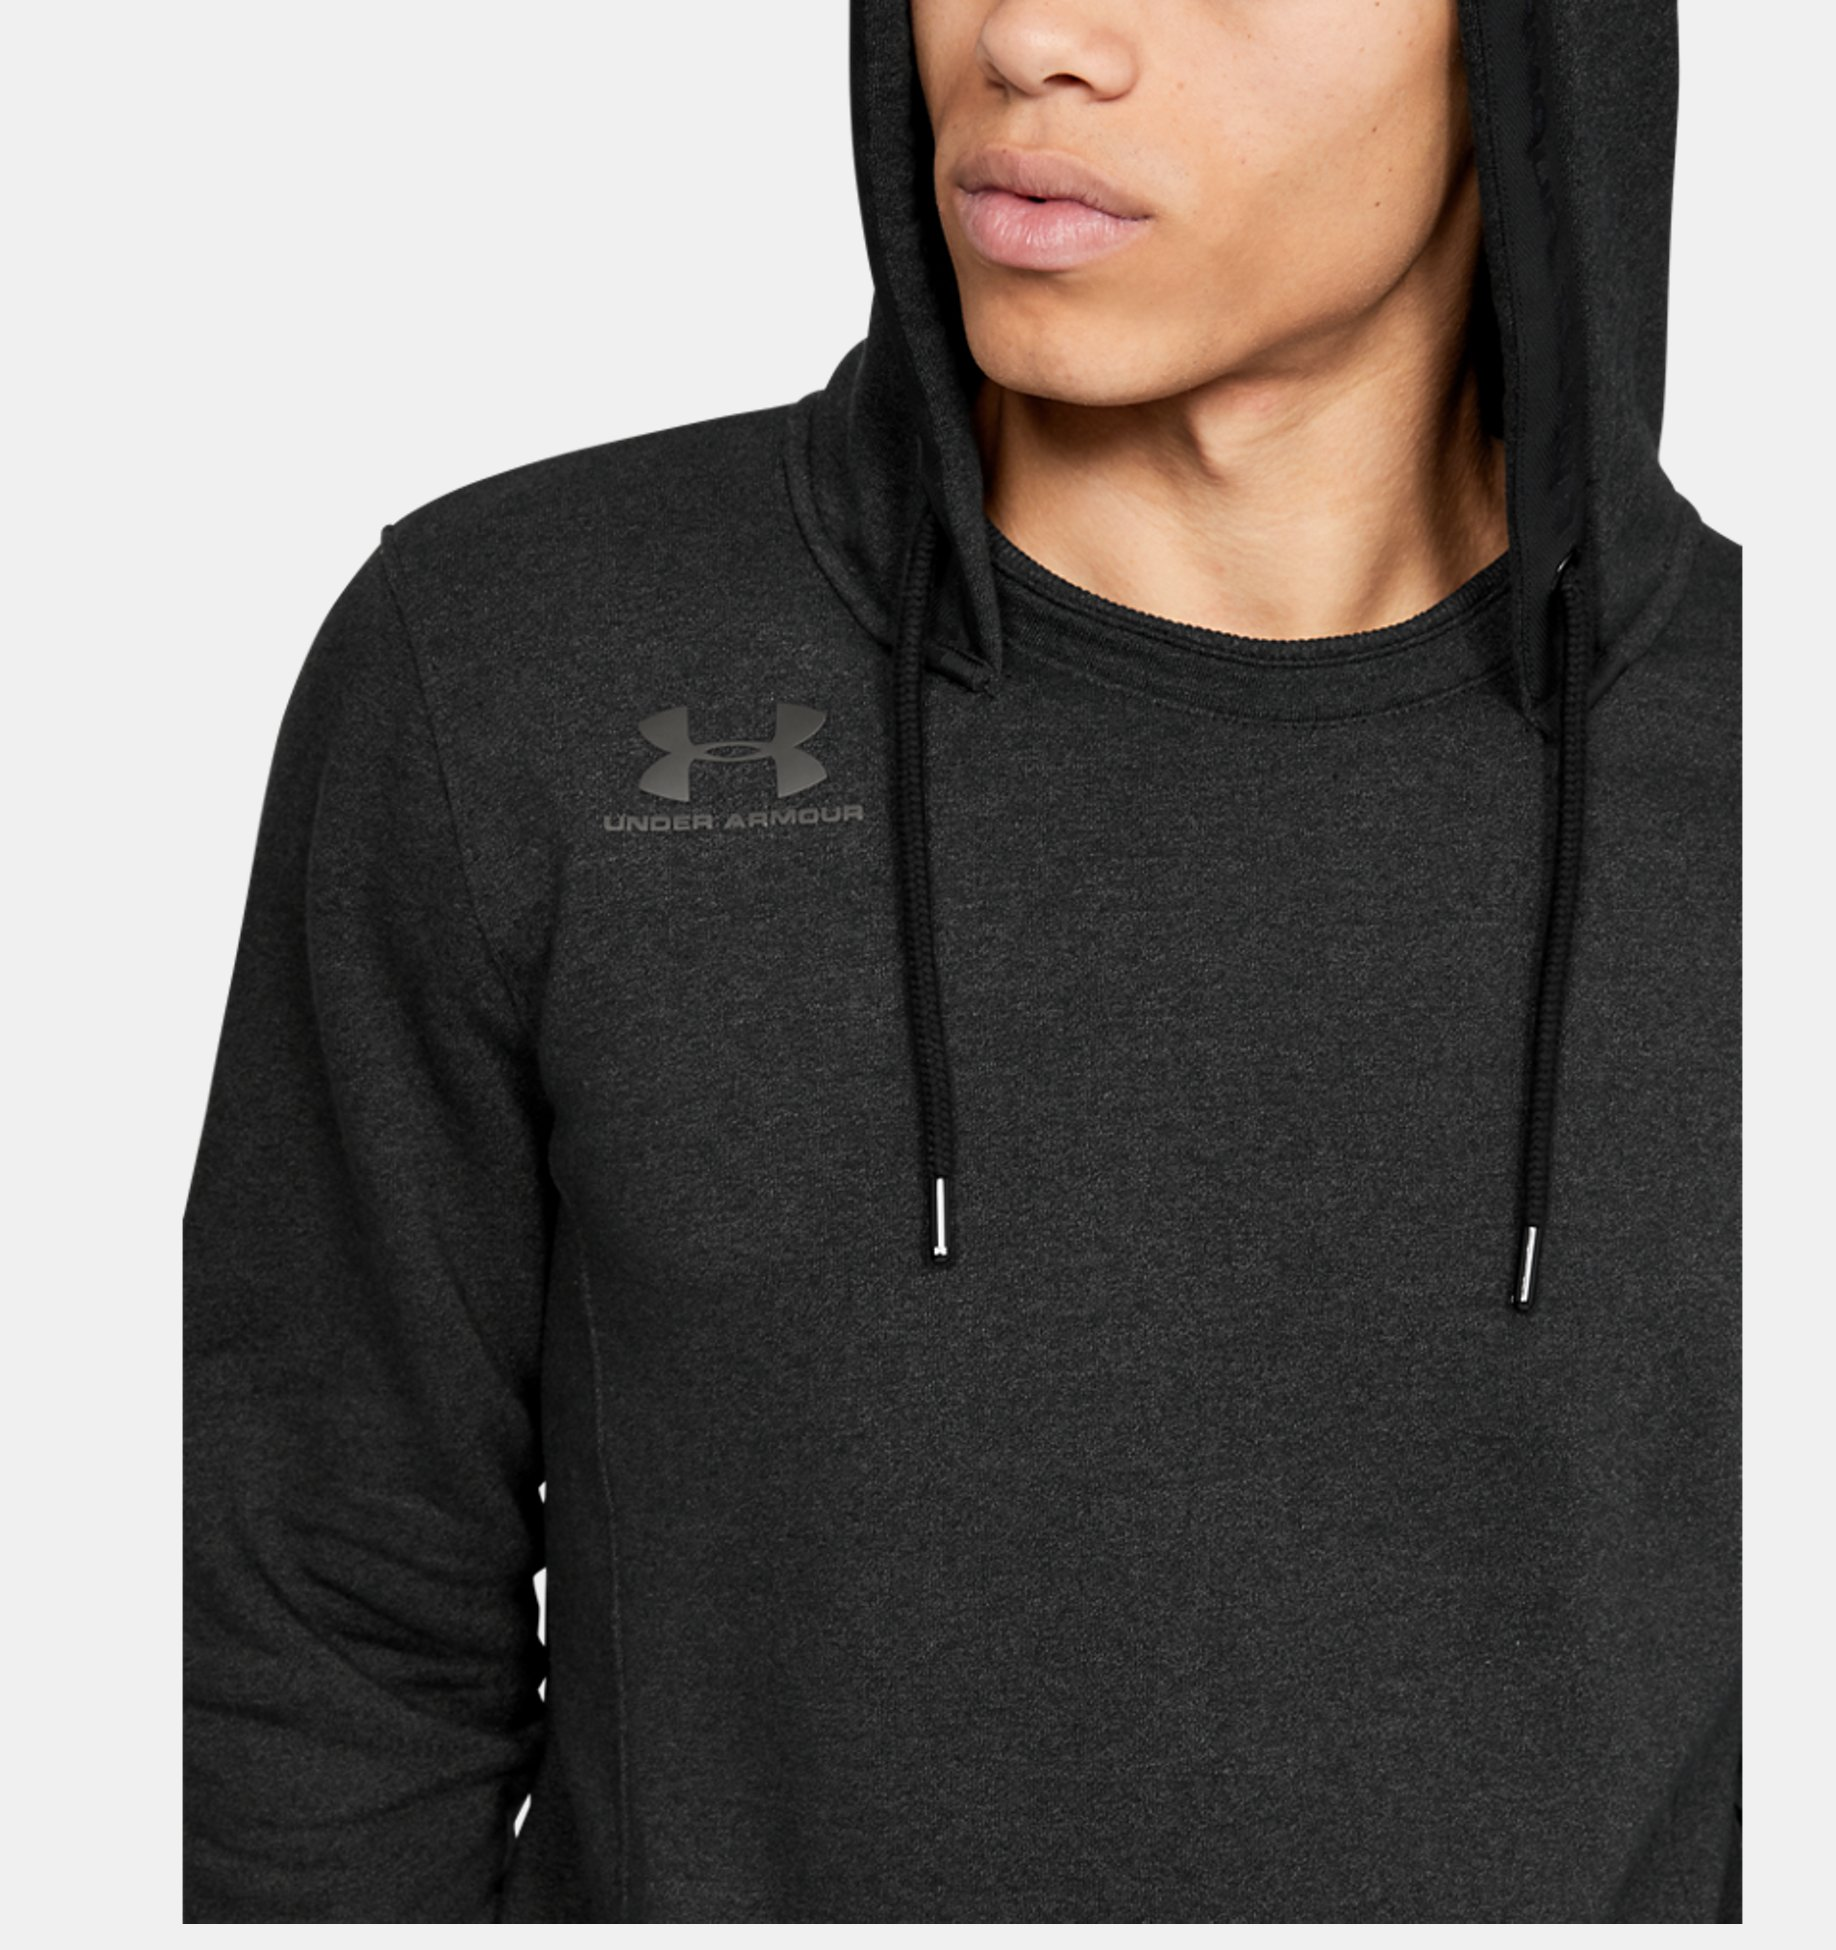 Men's UA Accelerate Off Pitch Hoodie | Under Armour DK